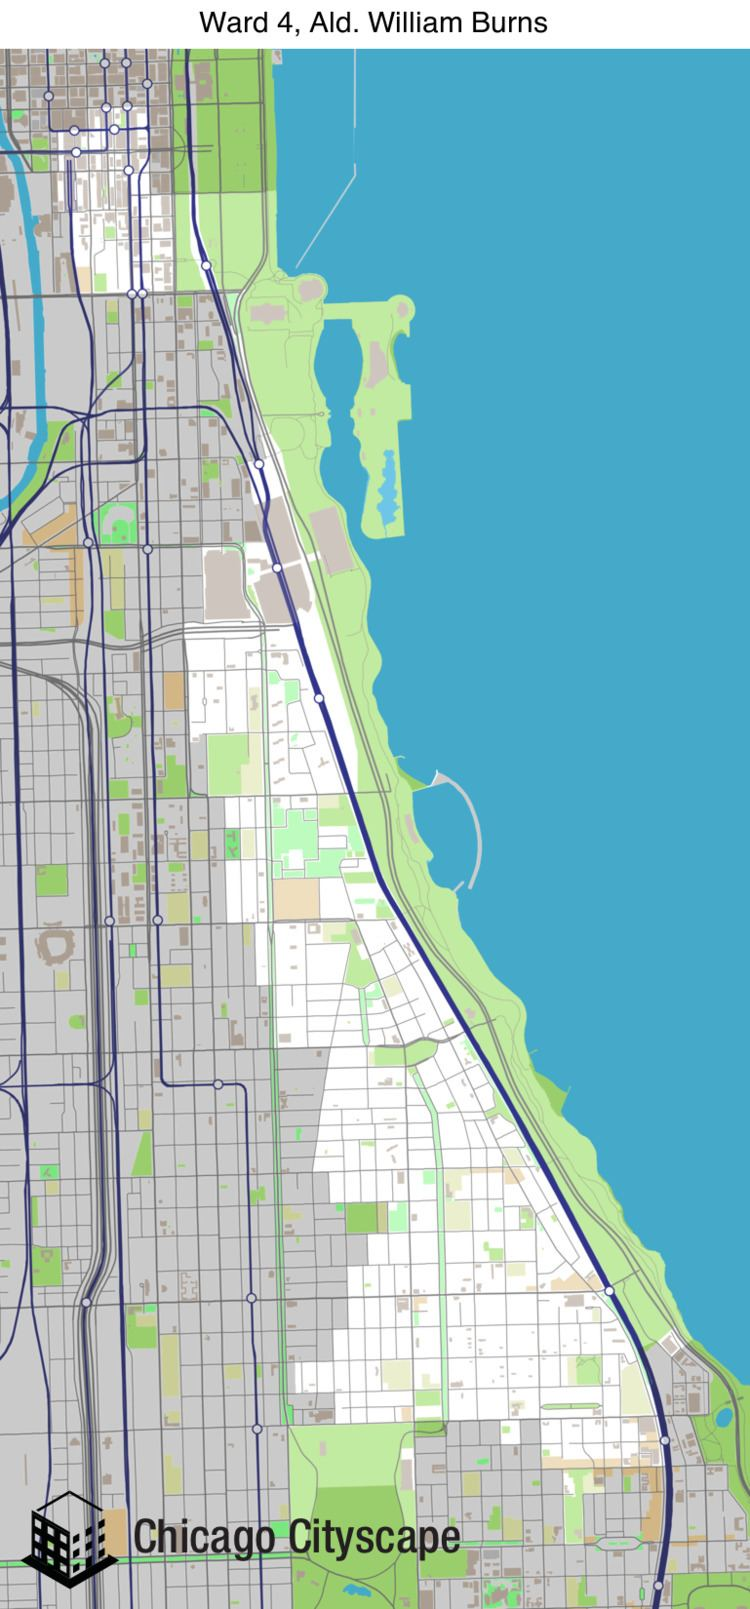 4th Ward, Chicago wwwchicagocityscapecommoatpbwards2015ward4png